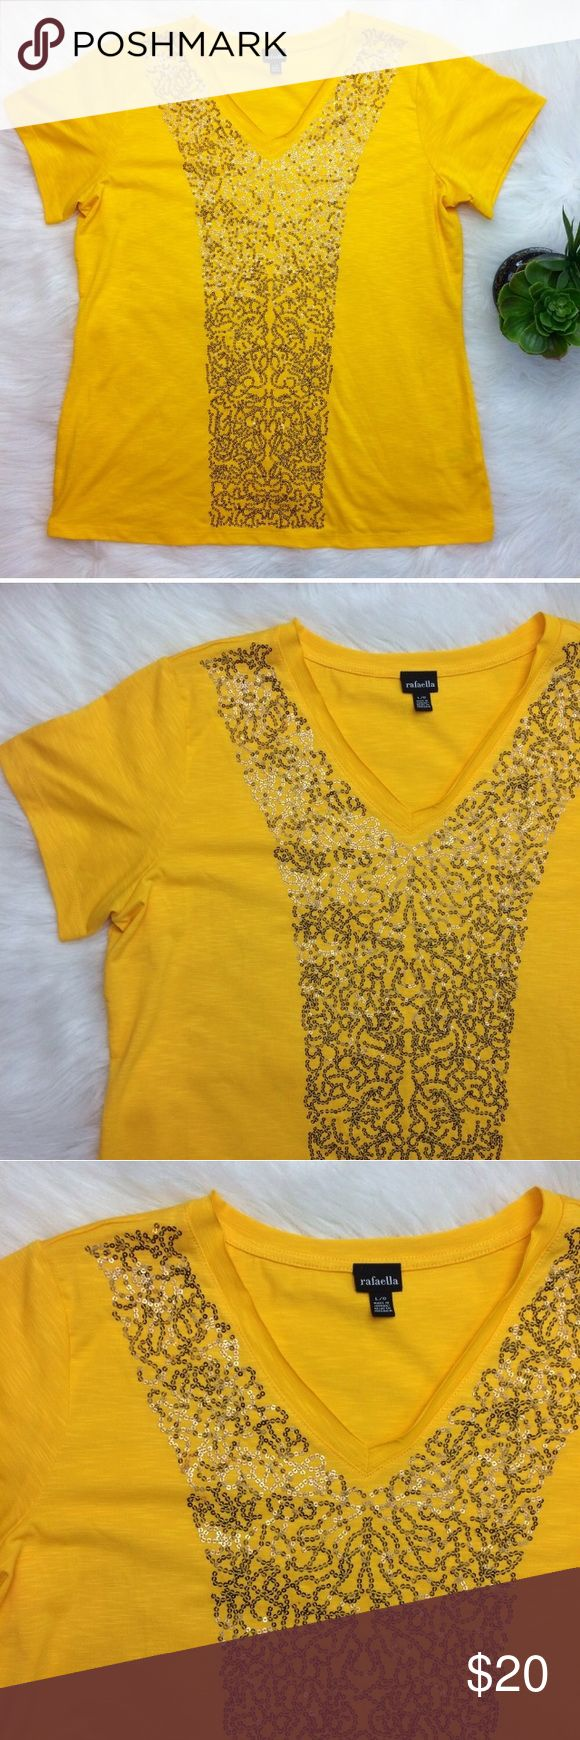 """Rafaella Yellow Sequined Short Sleeved Top Yellow short sleeves v-neck top by rafaella. Has Gold Sequined pattern down front center. Size Large. Armpit measurement is 20.5"""". Length is 25"""". Excellent condition. Perfect for summer! Rafaella Tops Tees - Short Sleeve"""